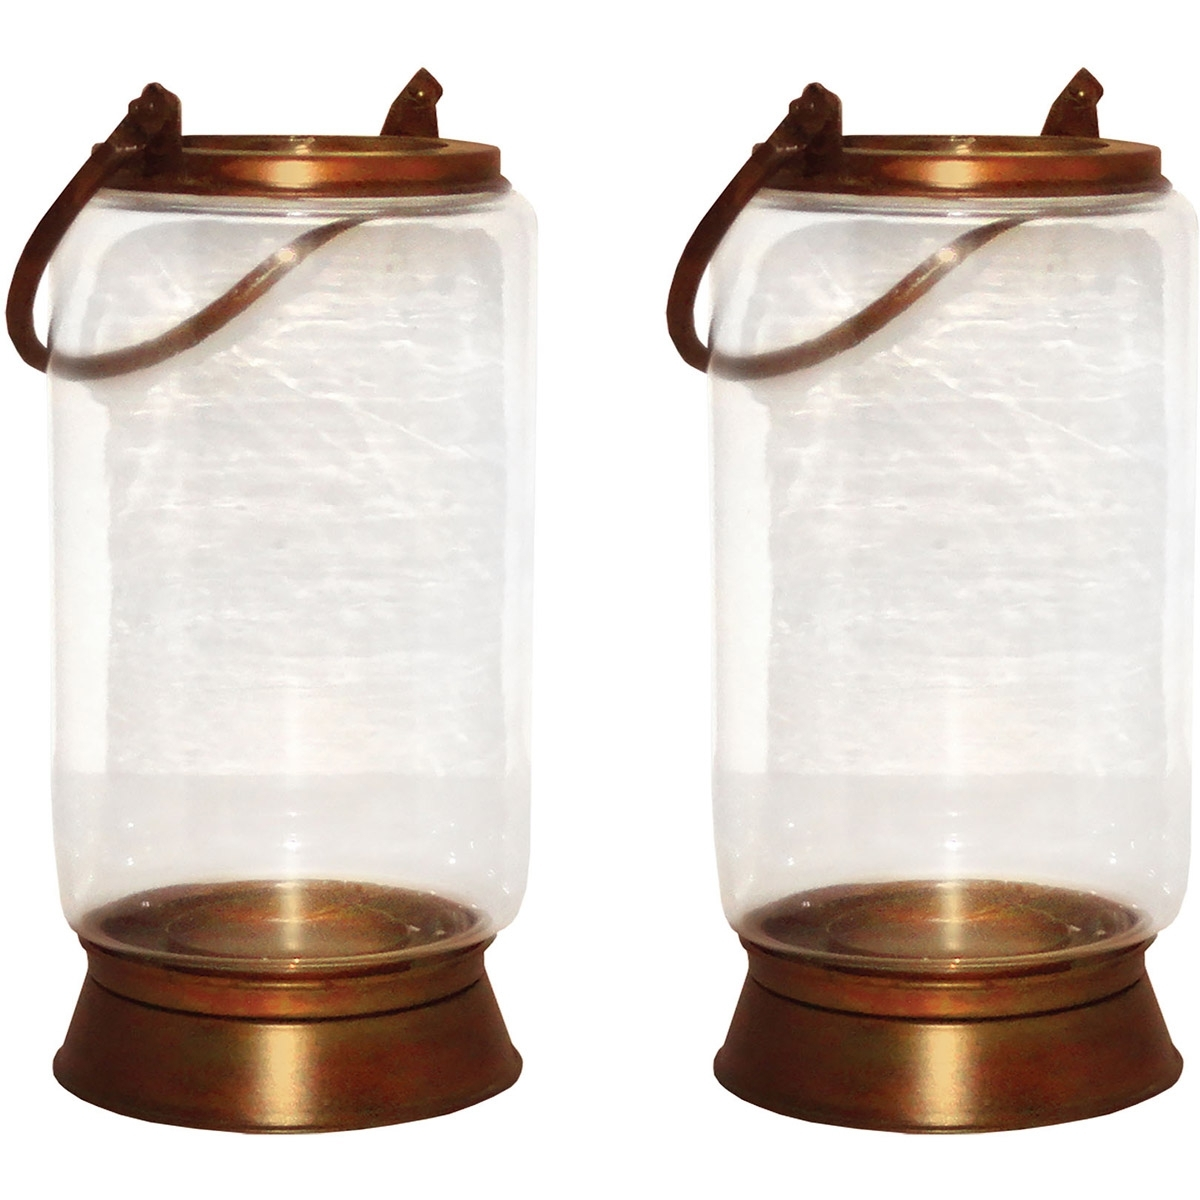 Pomeroy 401329/s2 Taos 10 X 6 Inch Burned Copper Outdoor Lanterns Intended For Current Copper Outdoor Lanterns (View 14 of 20)